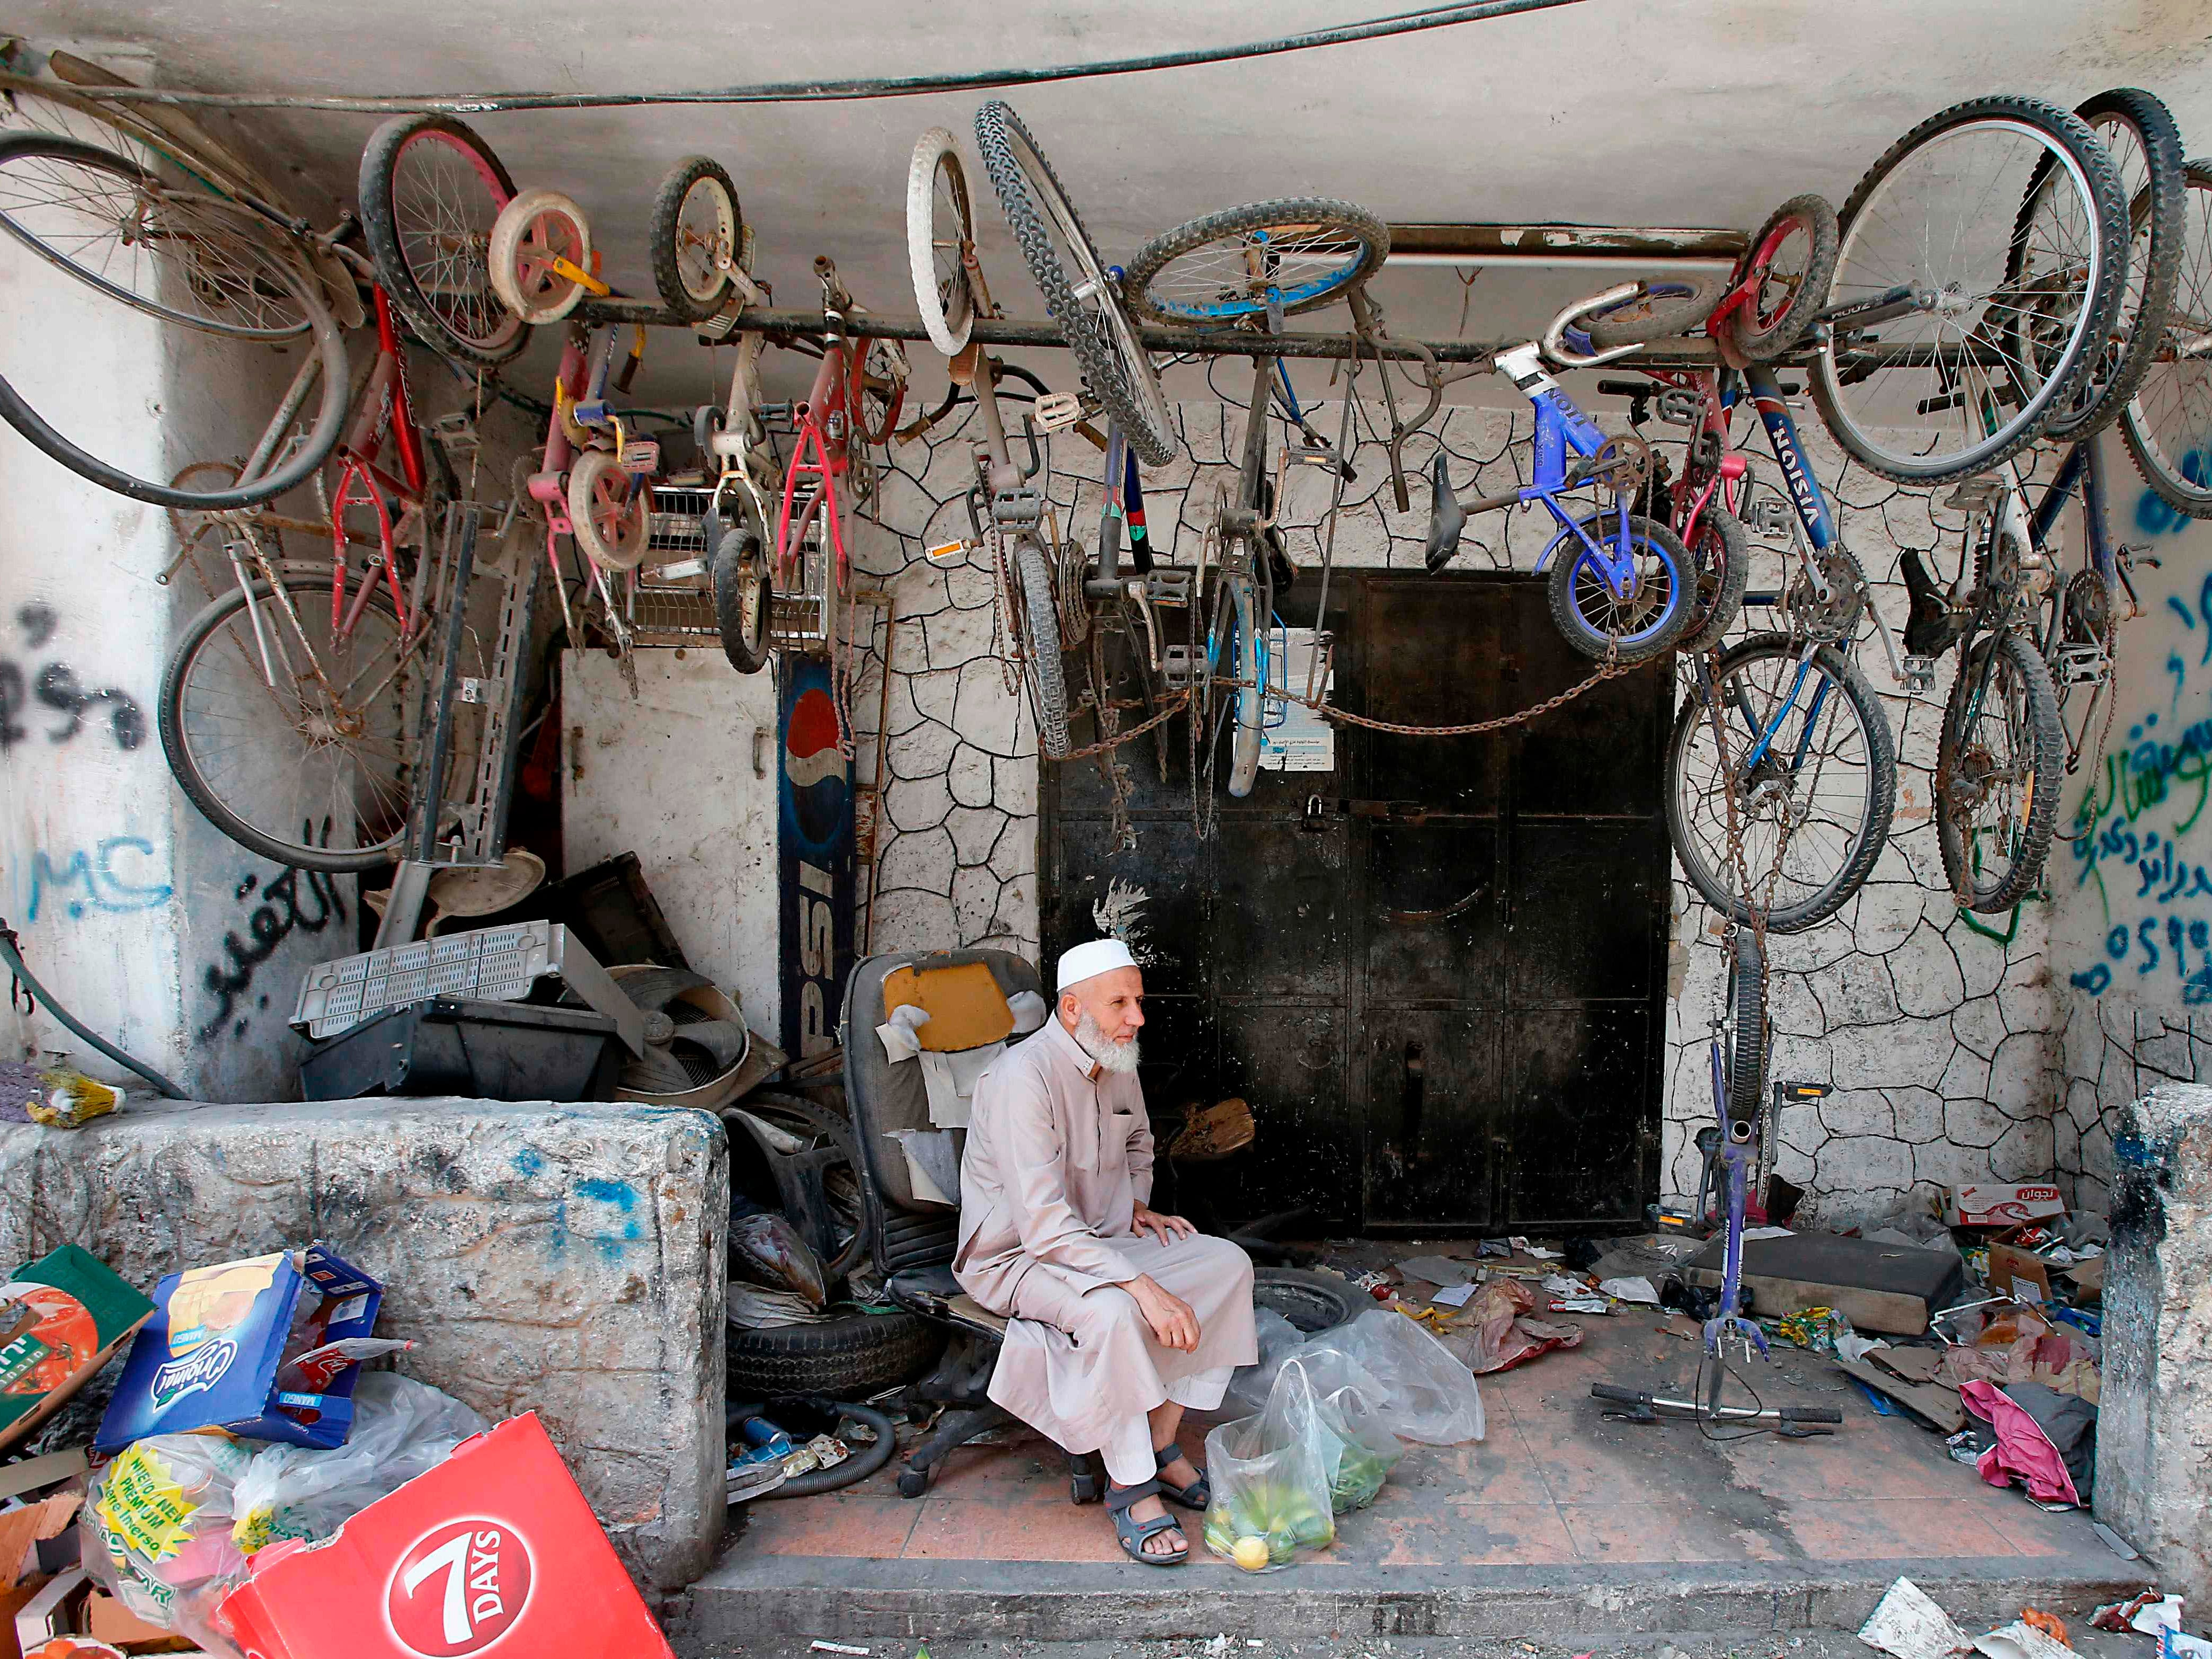 "A Palestinian man sits by bicycles at the United nations Relief and Works Agency's (UNRWA, UN agency for Palestinian refugees) Fawwar Palestinian refugee camp, southern West Bank, near Hebron, on September 2, 2018. - The UN agency for Palestinian refugees (UNRWA) has been a lifeline for millions of Palestinians since it was set up nearly 70 years ago. On August 31, the United States, by far the biggest contributor to the agency, announced it was halting its funding to the organisation, which it labelled ""irredeemably flawed"". The Naqba, ""Day of Catastrophe"" refers to the day, 15 May 1948, when the modern state of Israel was established following the Arab-Israeli war, which led to the displacement of the Palestinian people. (Photo by HAZEM BADER / AFP)HAZEM BADER/AFP/Getty Images ORIG FILE ID: AFP_18S6JT"